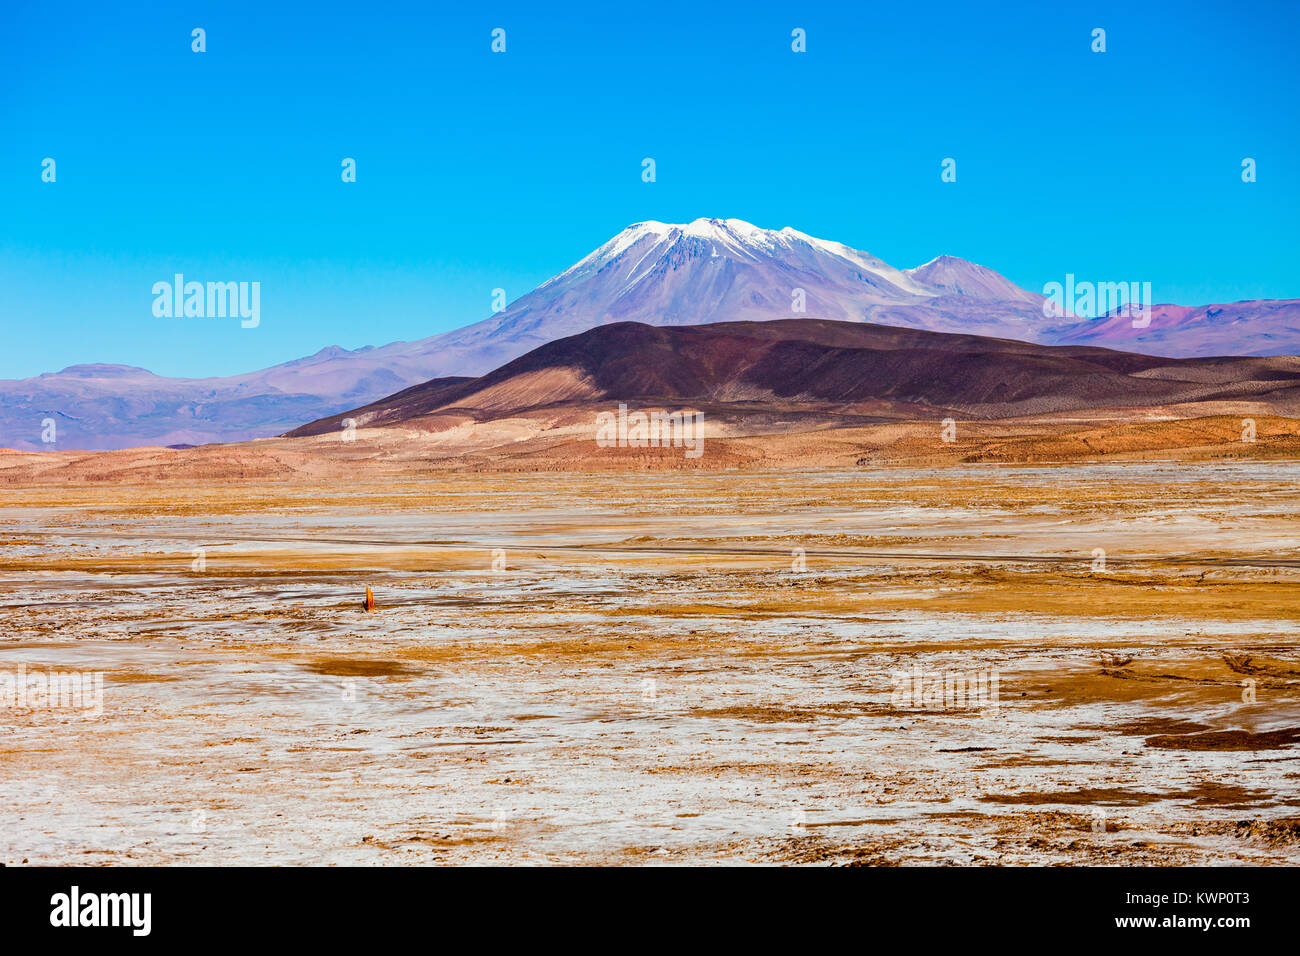 Ollague stratovolcano in the Andes, on the border between Bolivia and Chile. - Stock Image